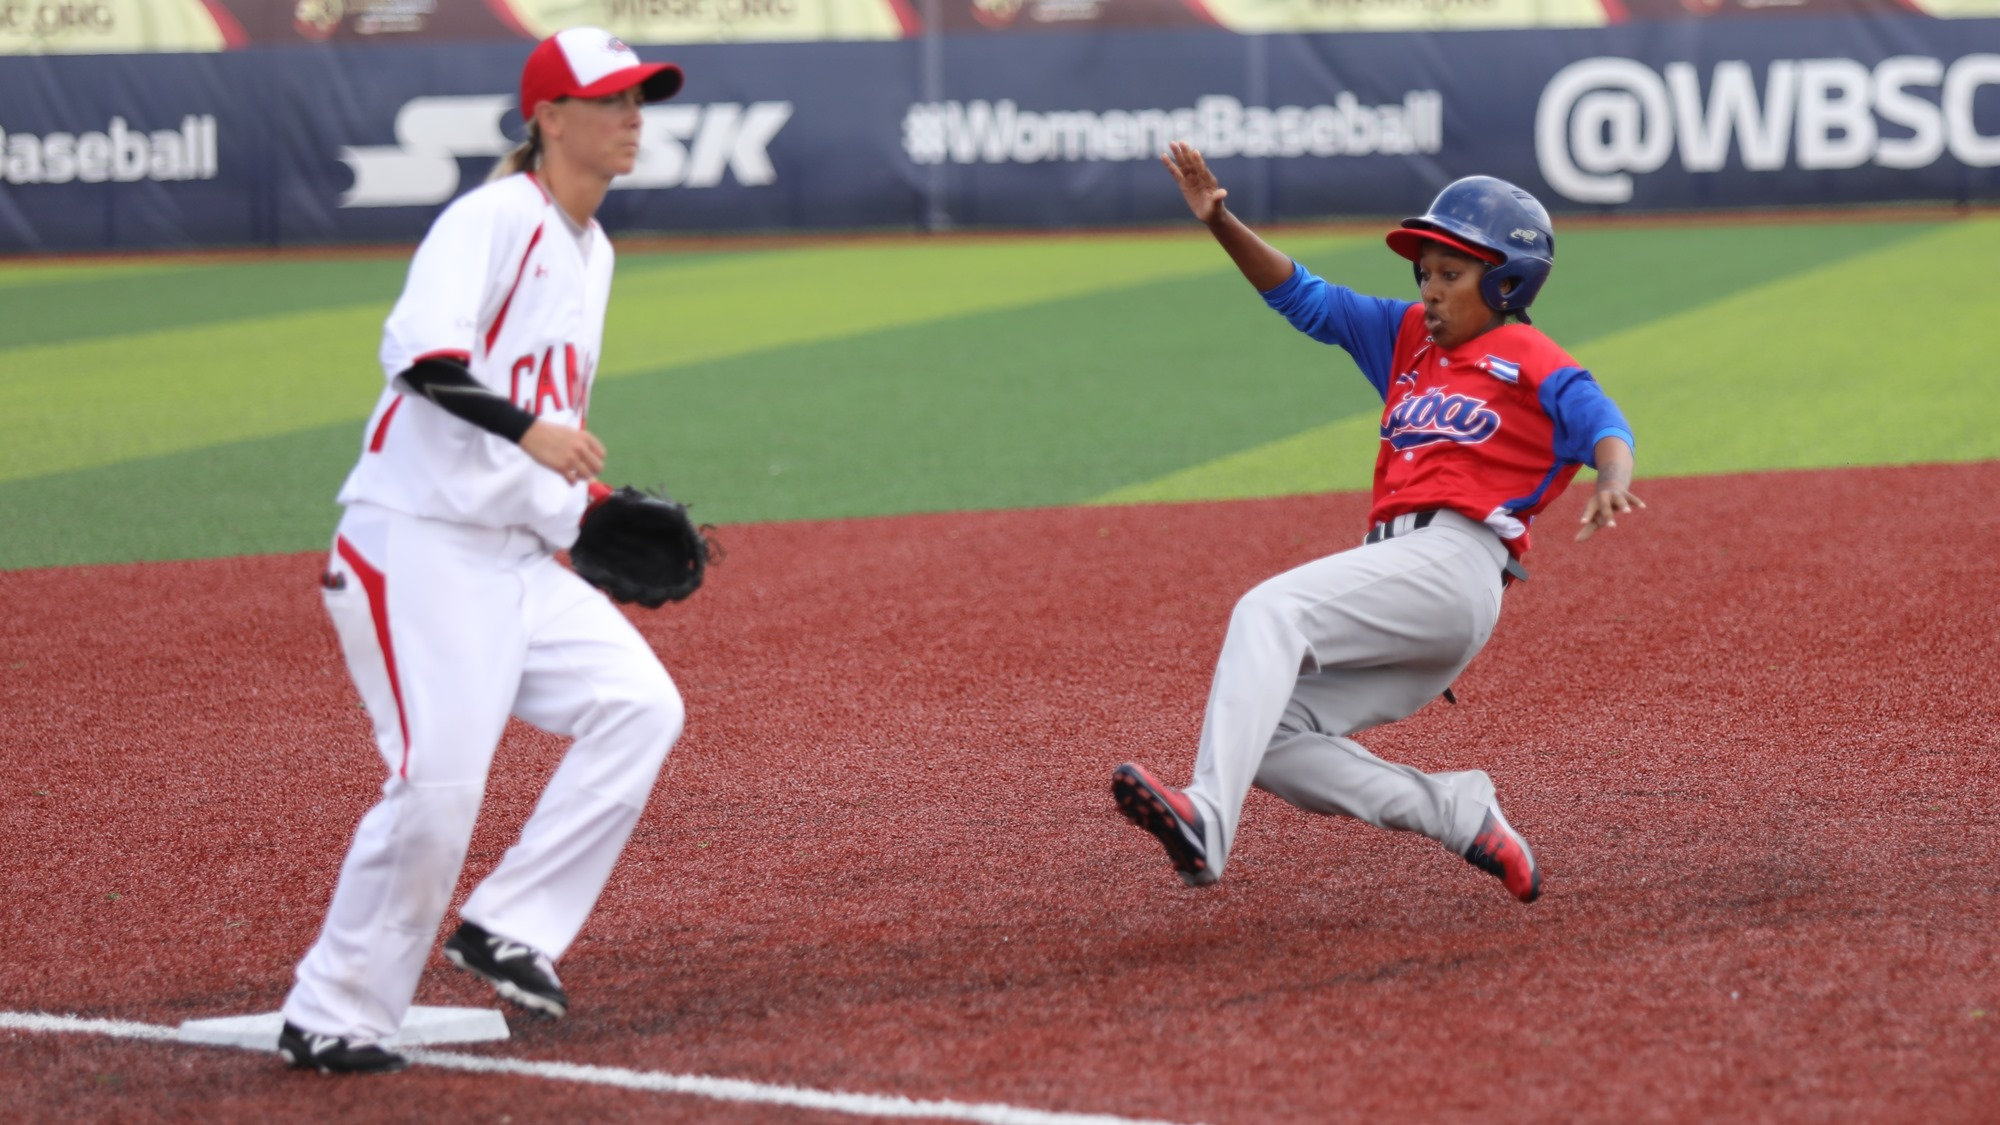 Cuba could not stick to an early lead and lost a game cut short by bad weather